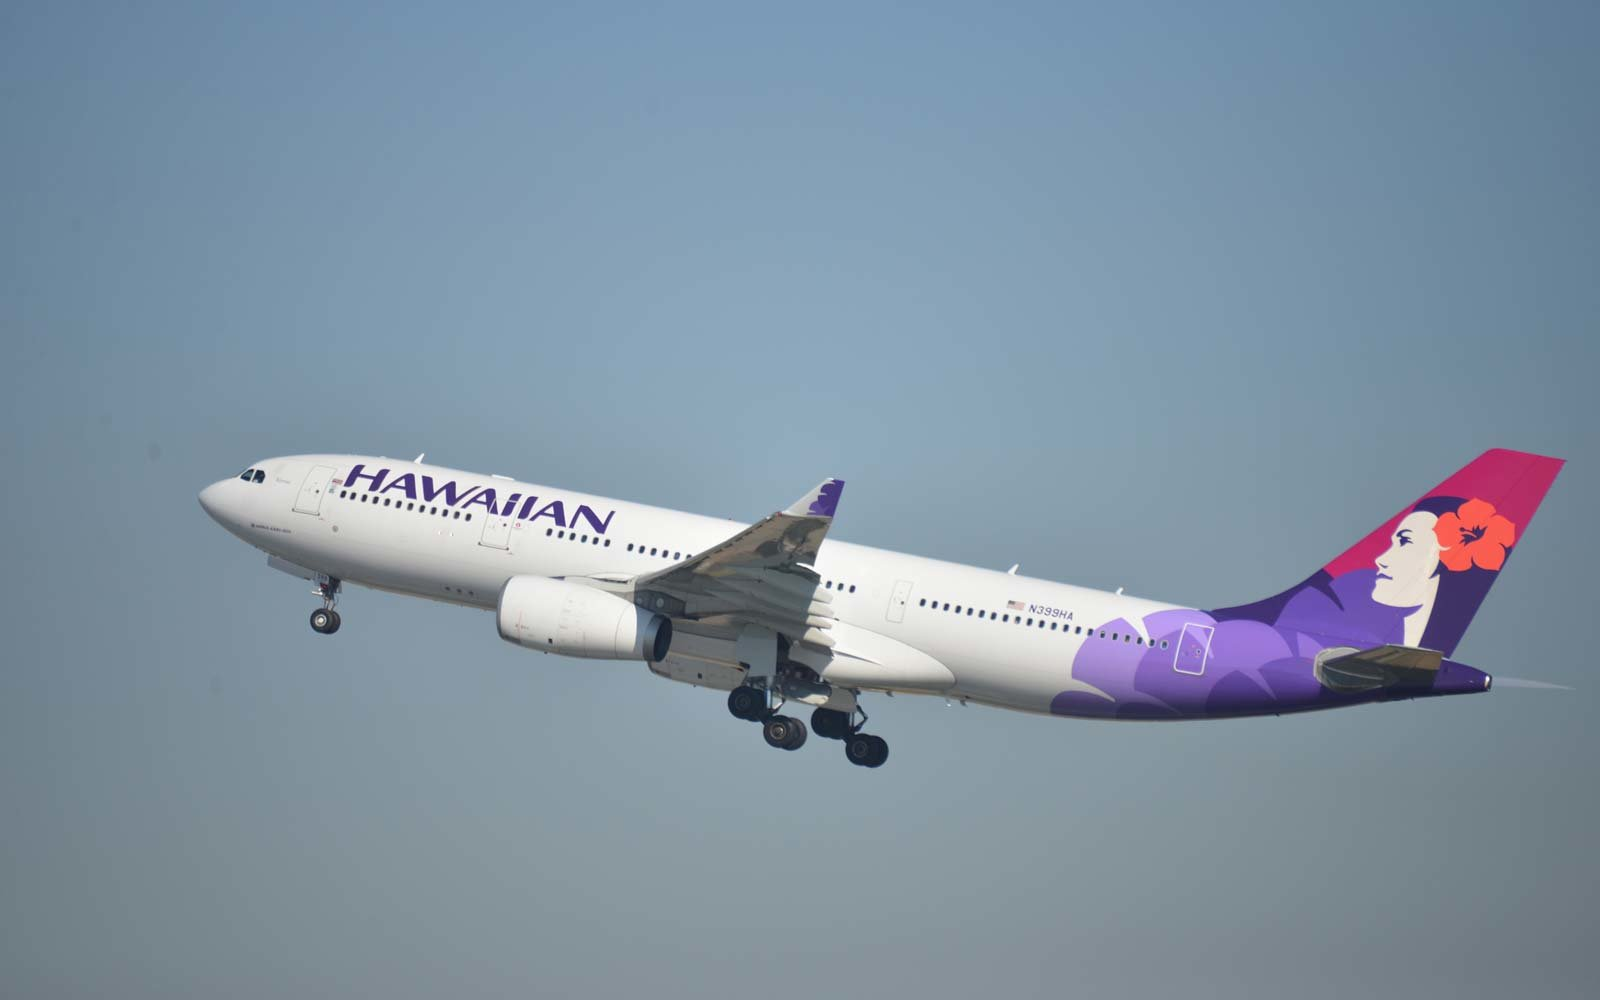 Hawaiian Airlines Airbus A330-200 (registration N399HA) is taking off from San Diego International Airport